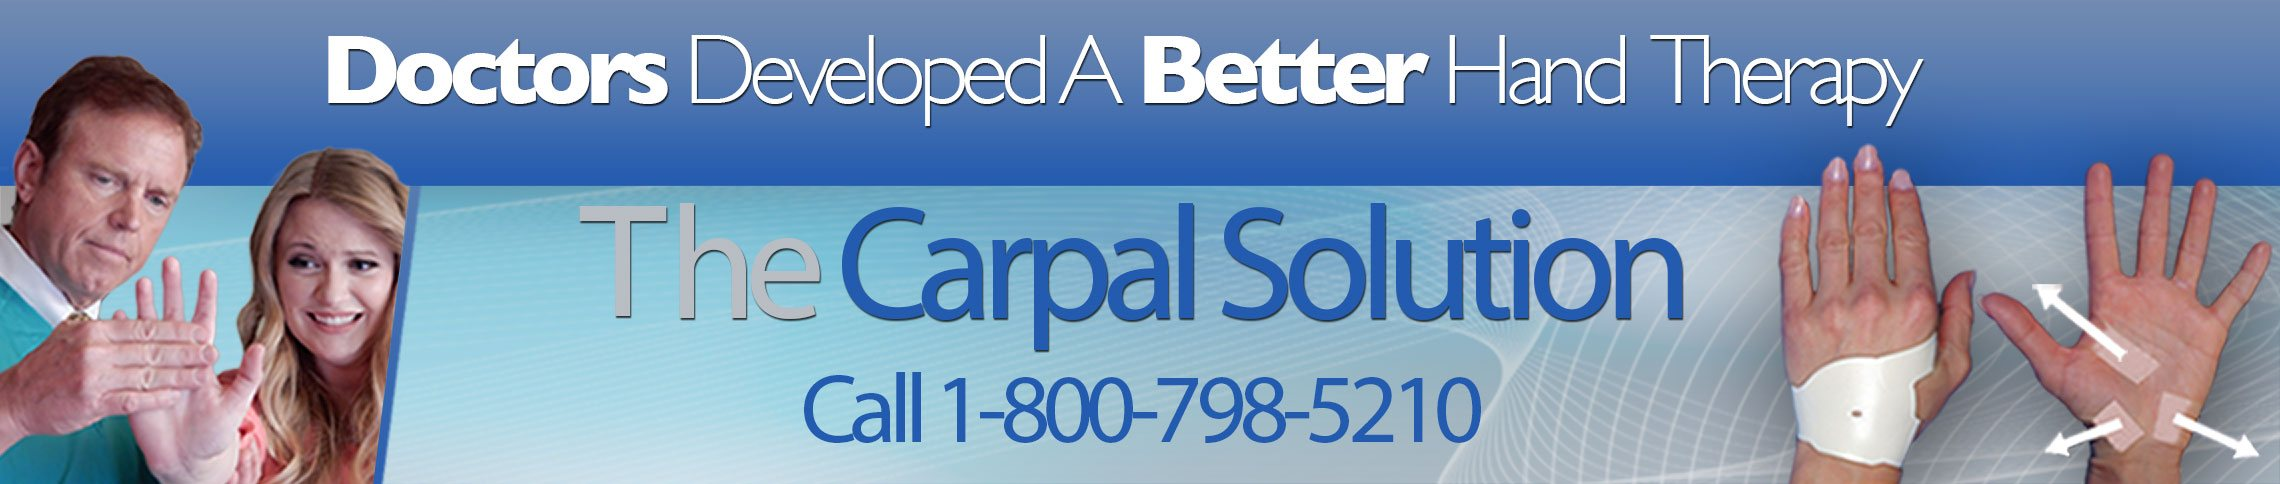 The Carpal Solution Retina Logo